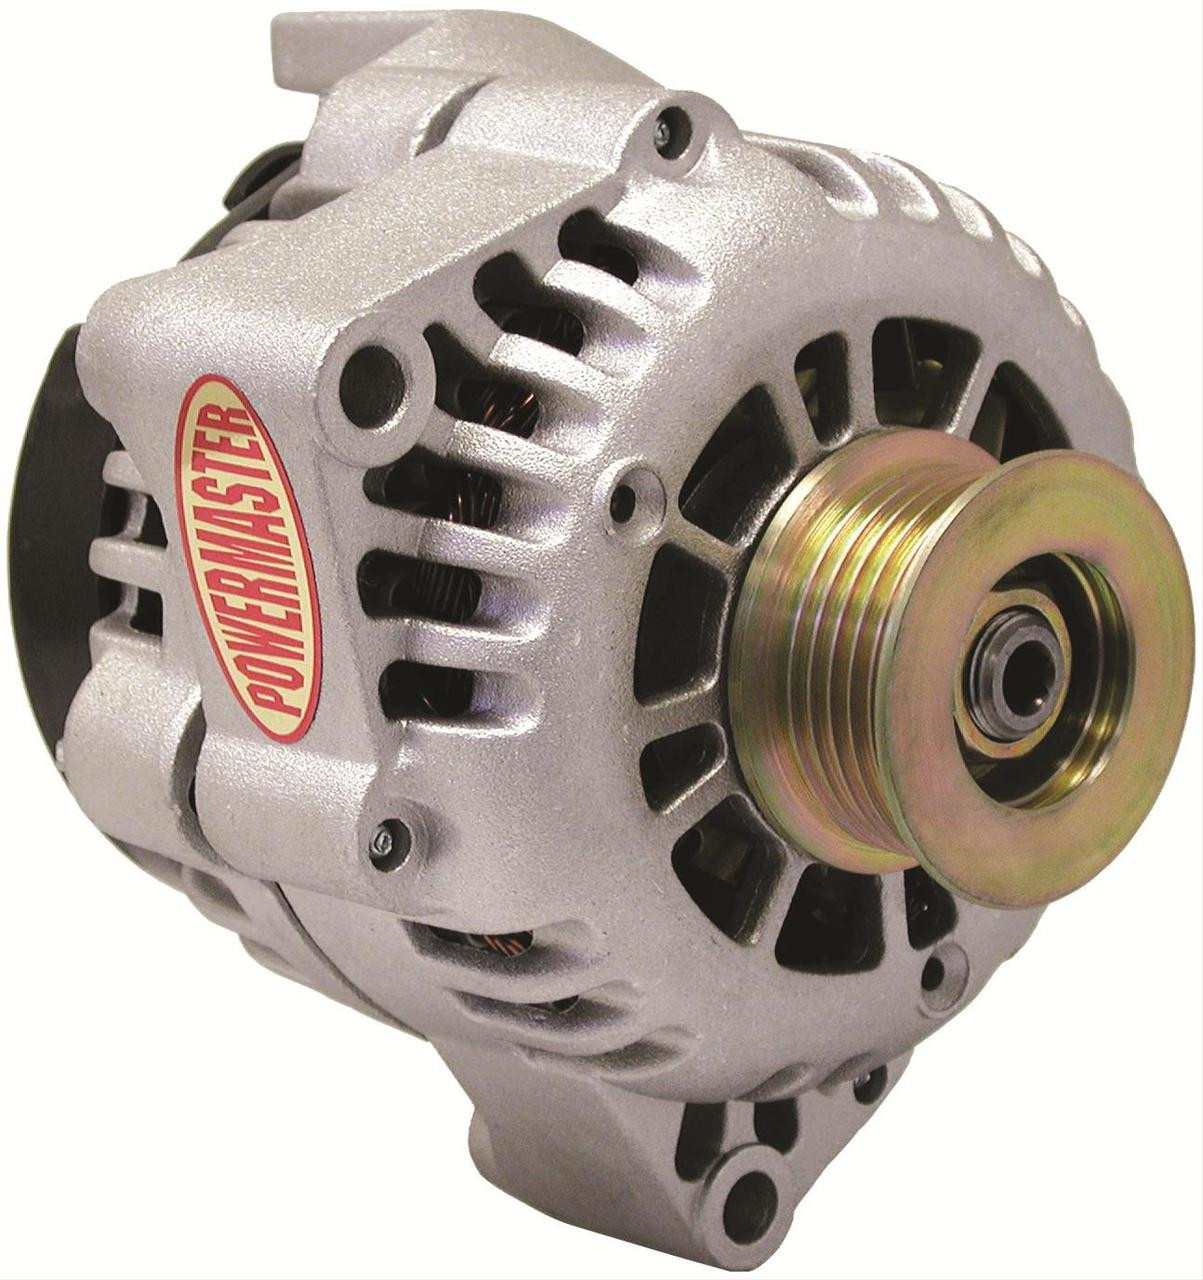 Ls1 Engine Dry Weight: Powermaster Alternator, 1998-2002 Camaro Firebird 150 Amp